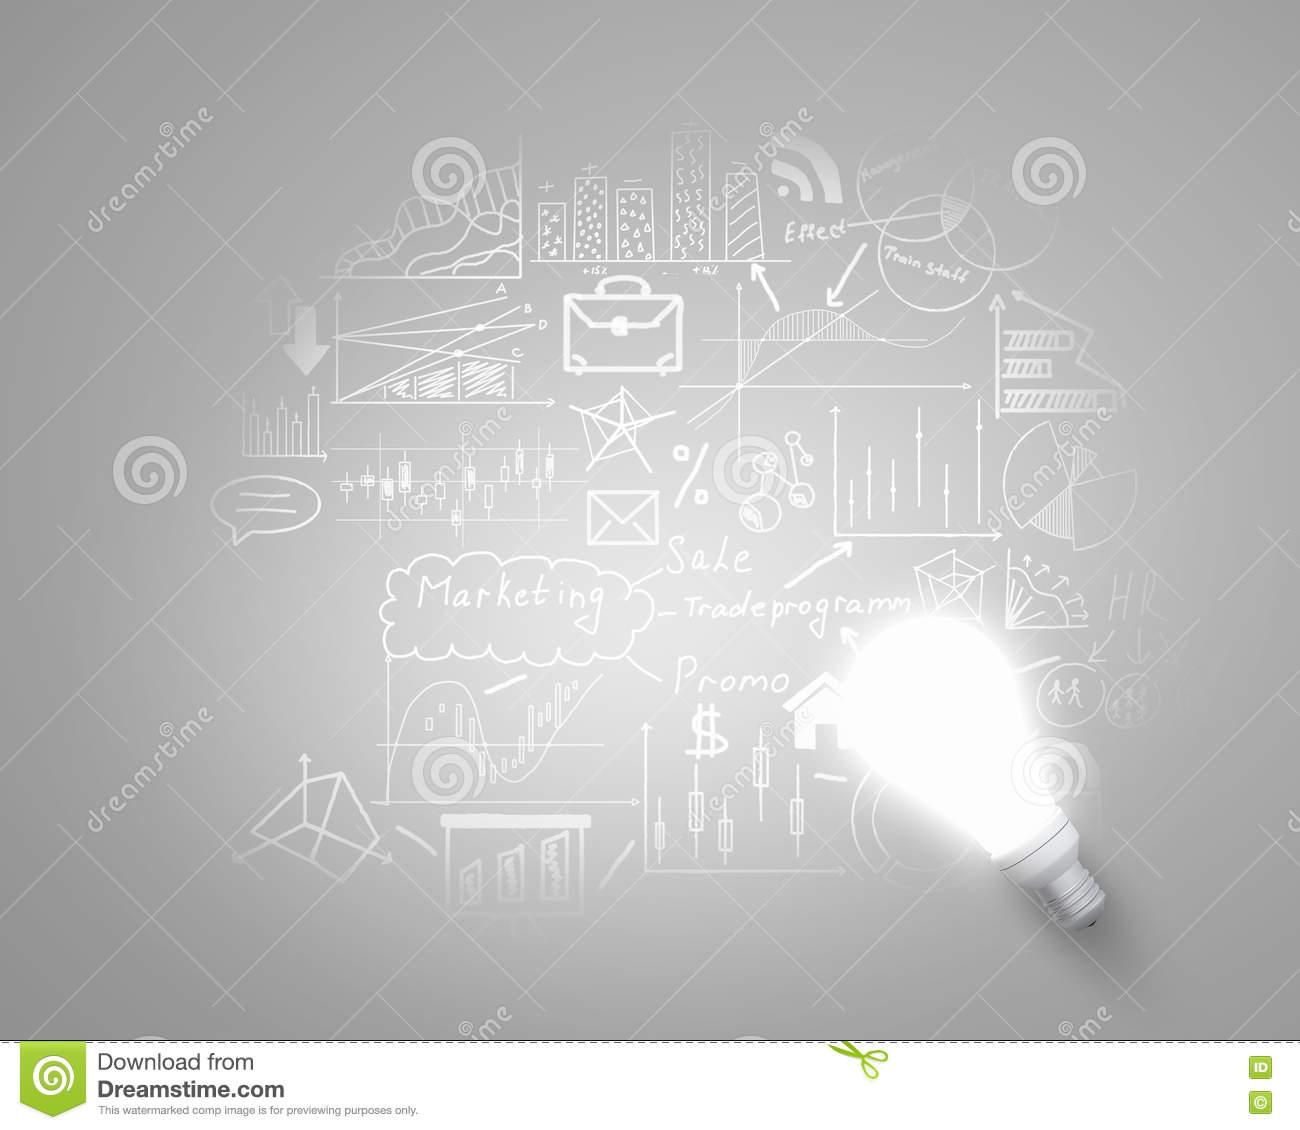 Bright ideas business plan